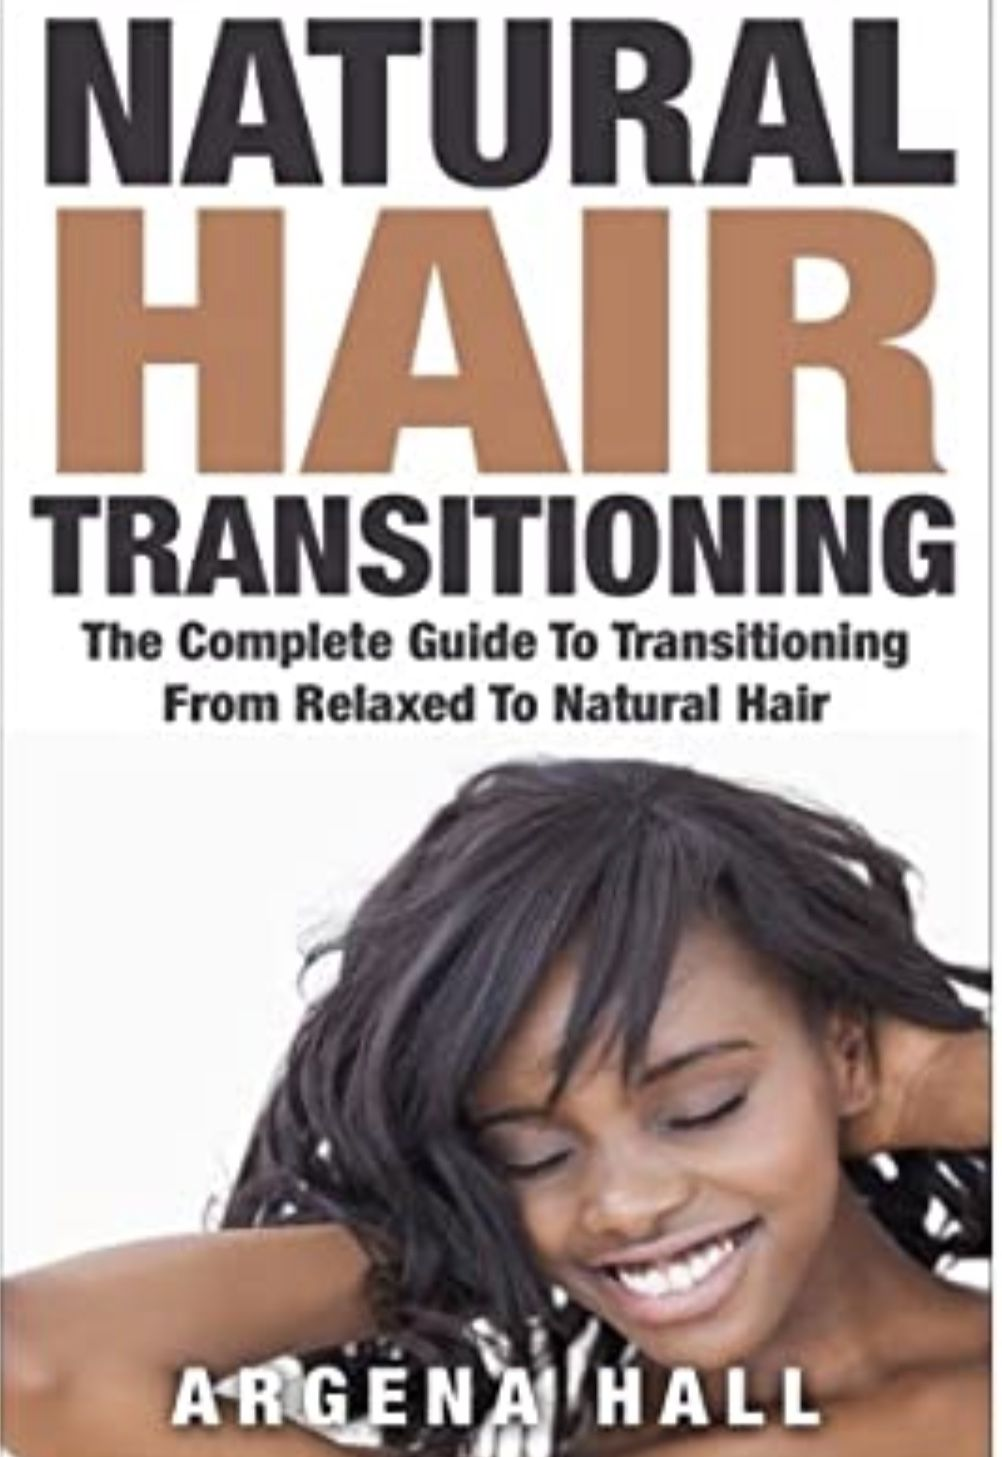 Natural Hair Transitioning eBook : The Complete Guide To Transitioning From Relaxed To Natural Hair